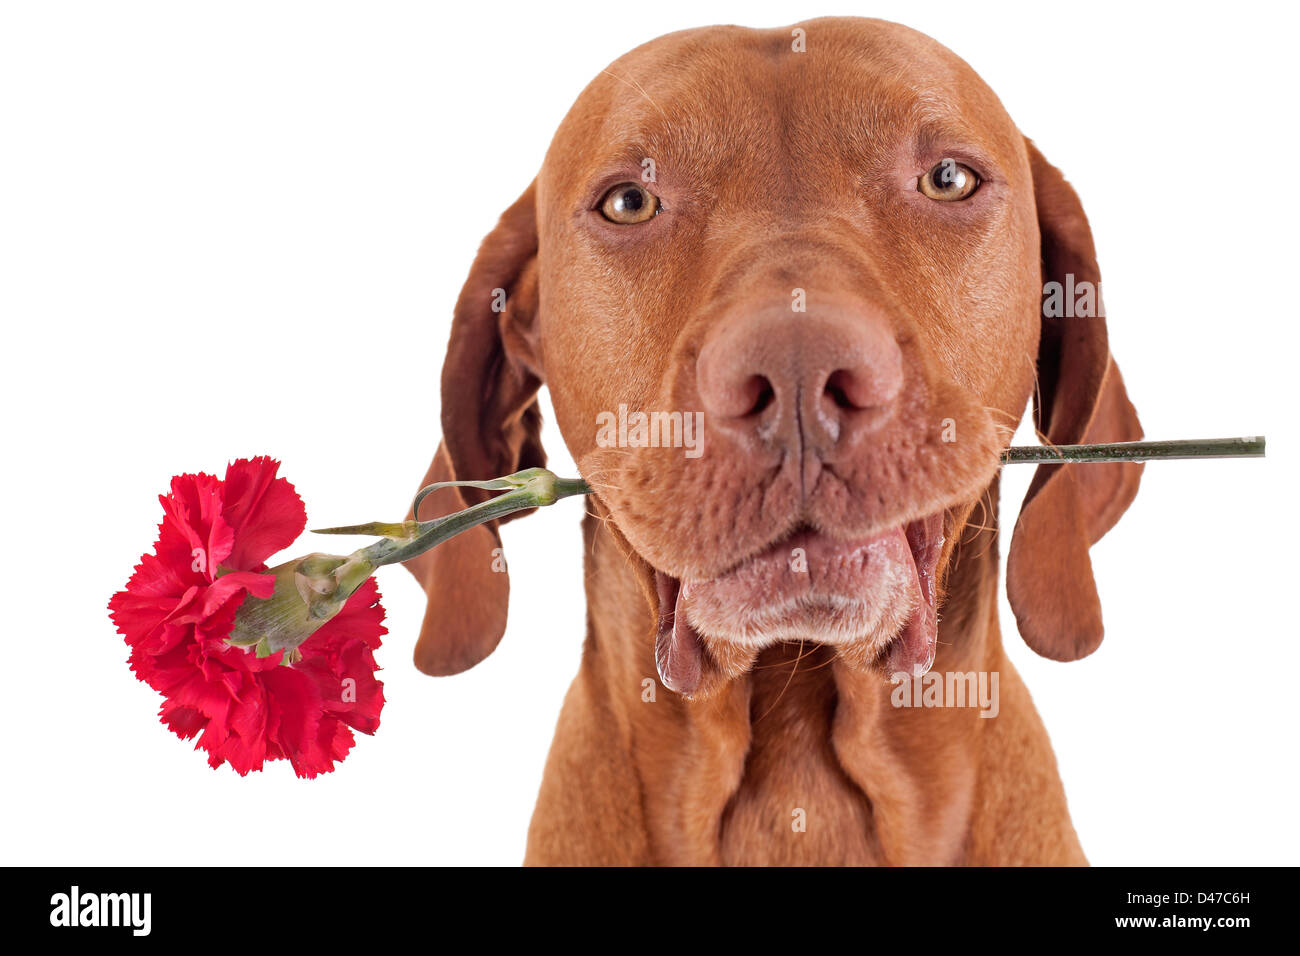 pure breed hunting dog holding a red carnation flower in the mouth isolated on white background - Stock Image